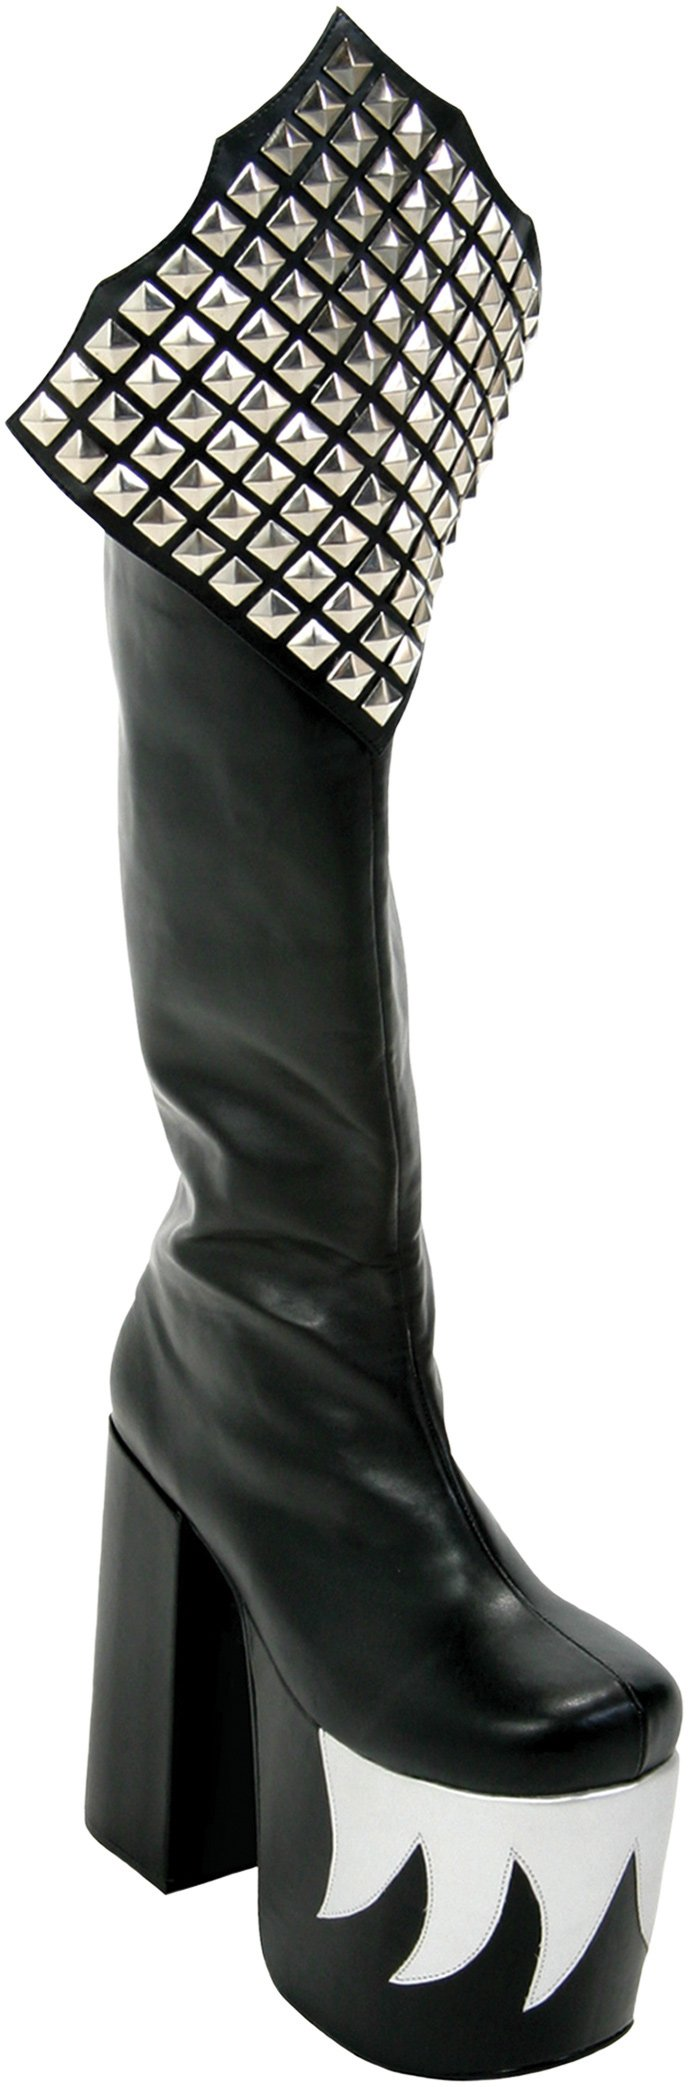 KISS - Demon Adult Boots